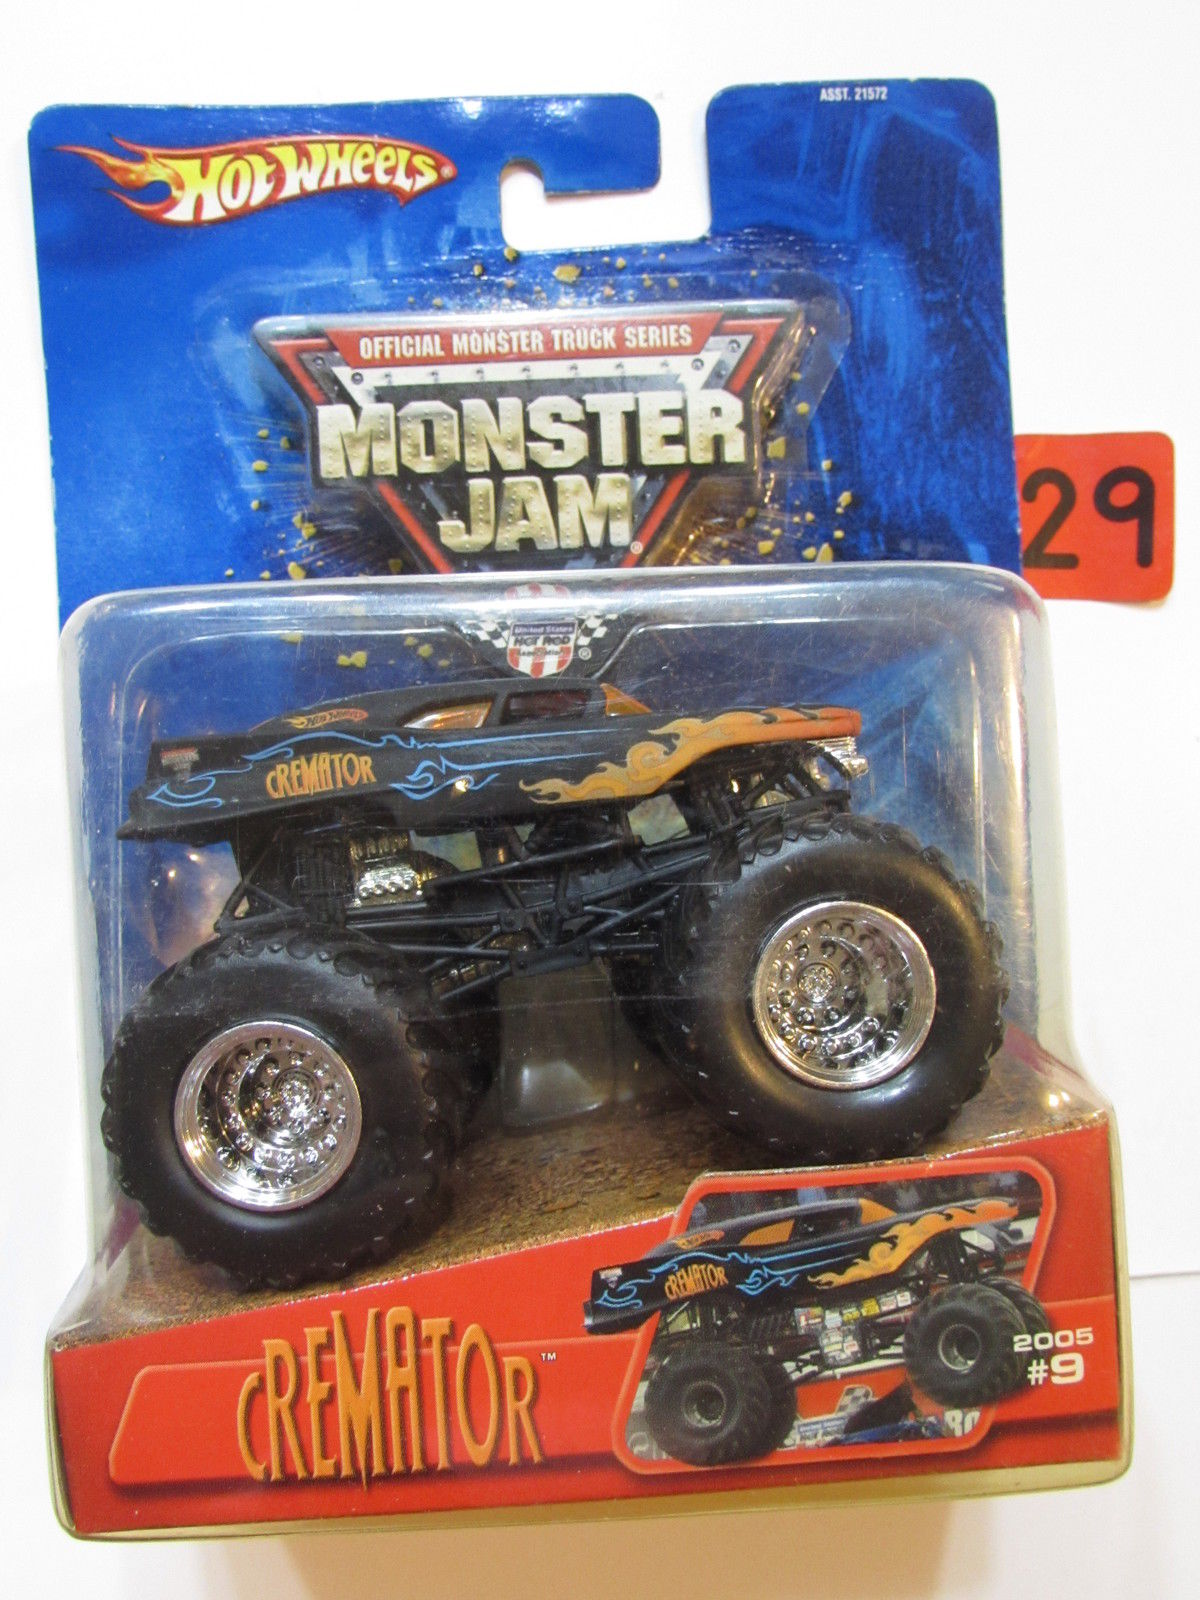 HOT WHEELS MONSTER JAM 2005 #09 CREMATOR